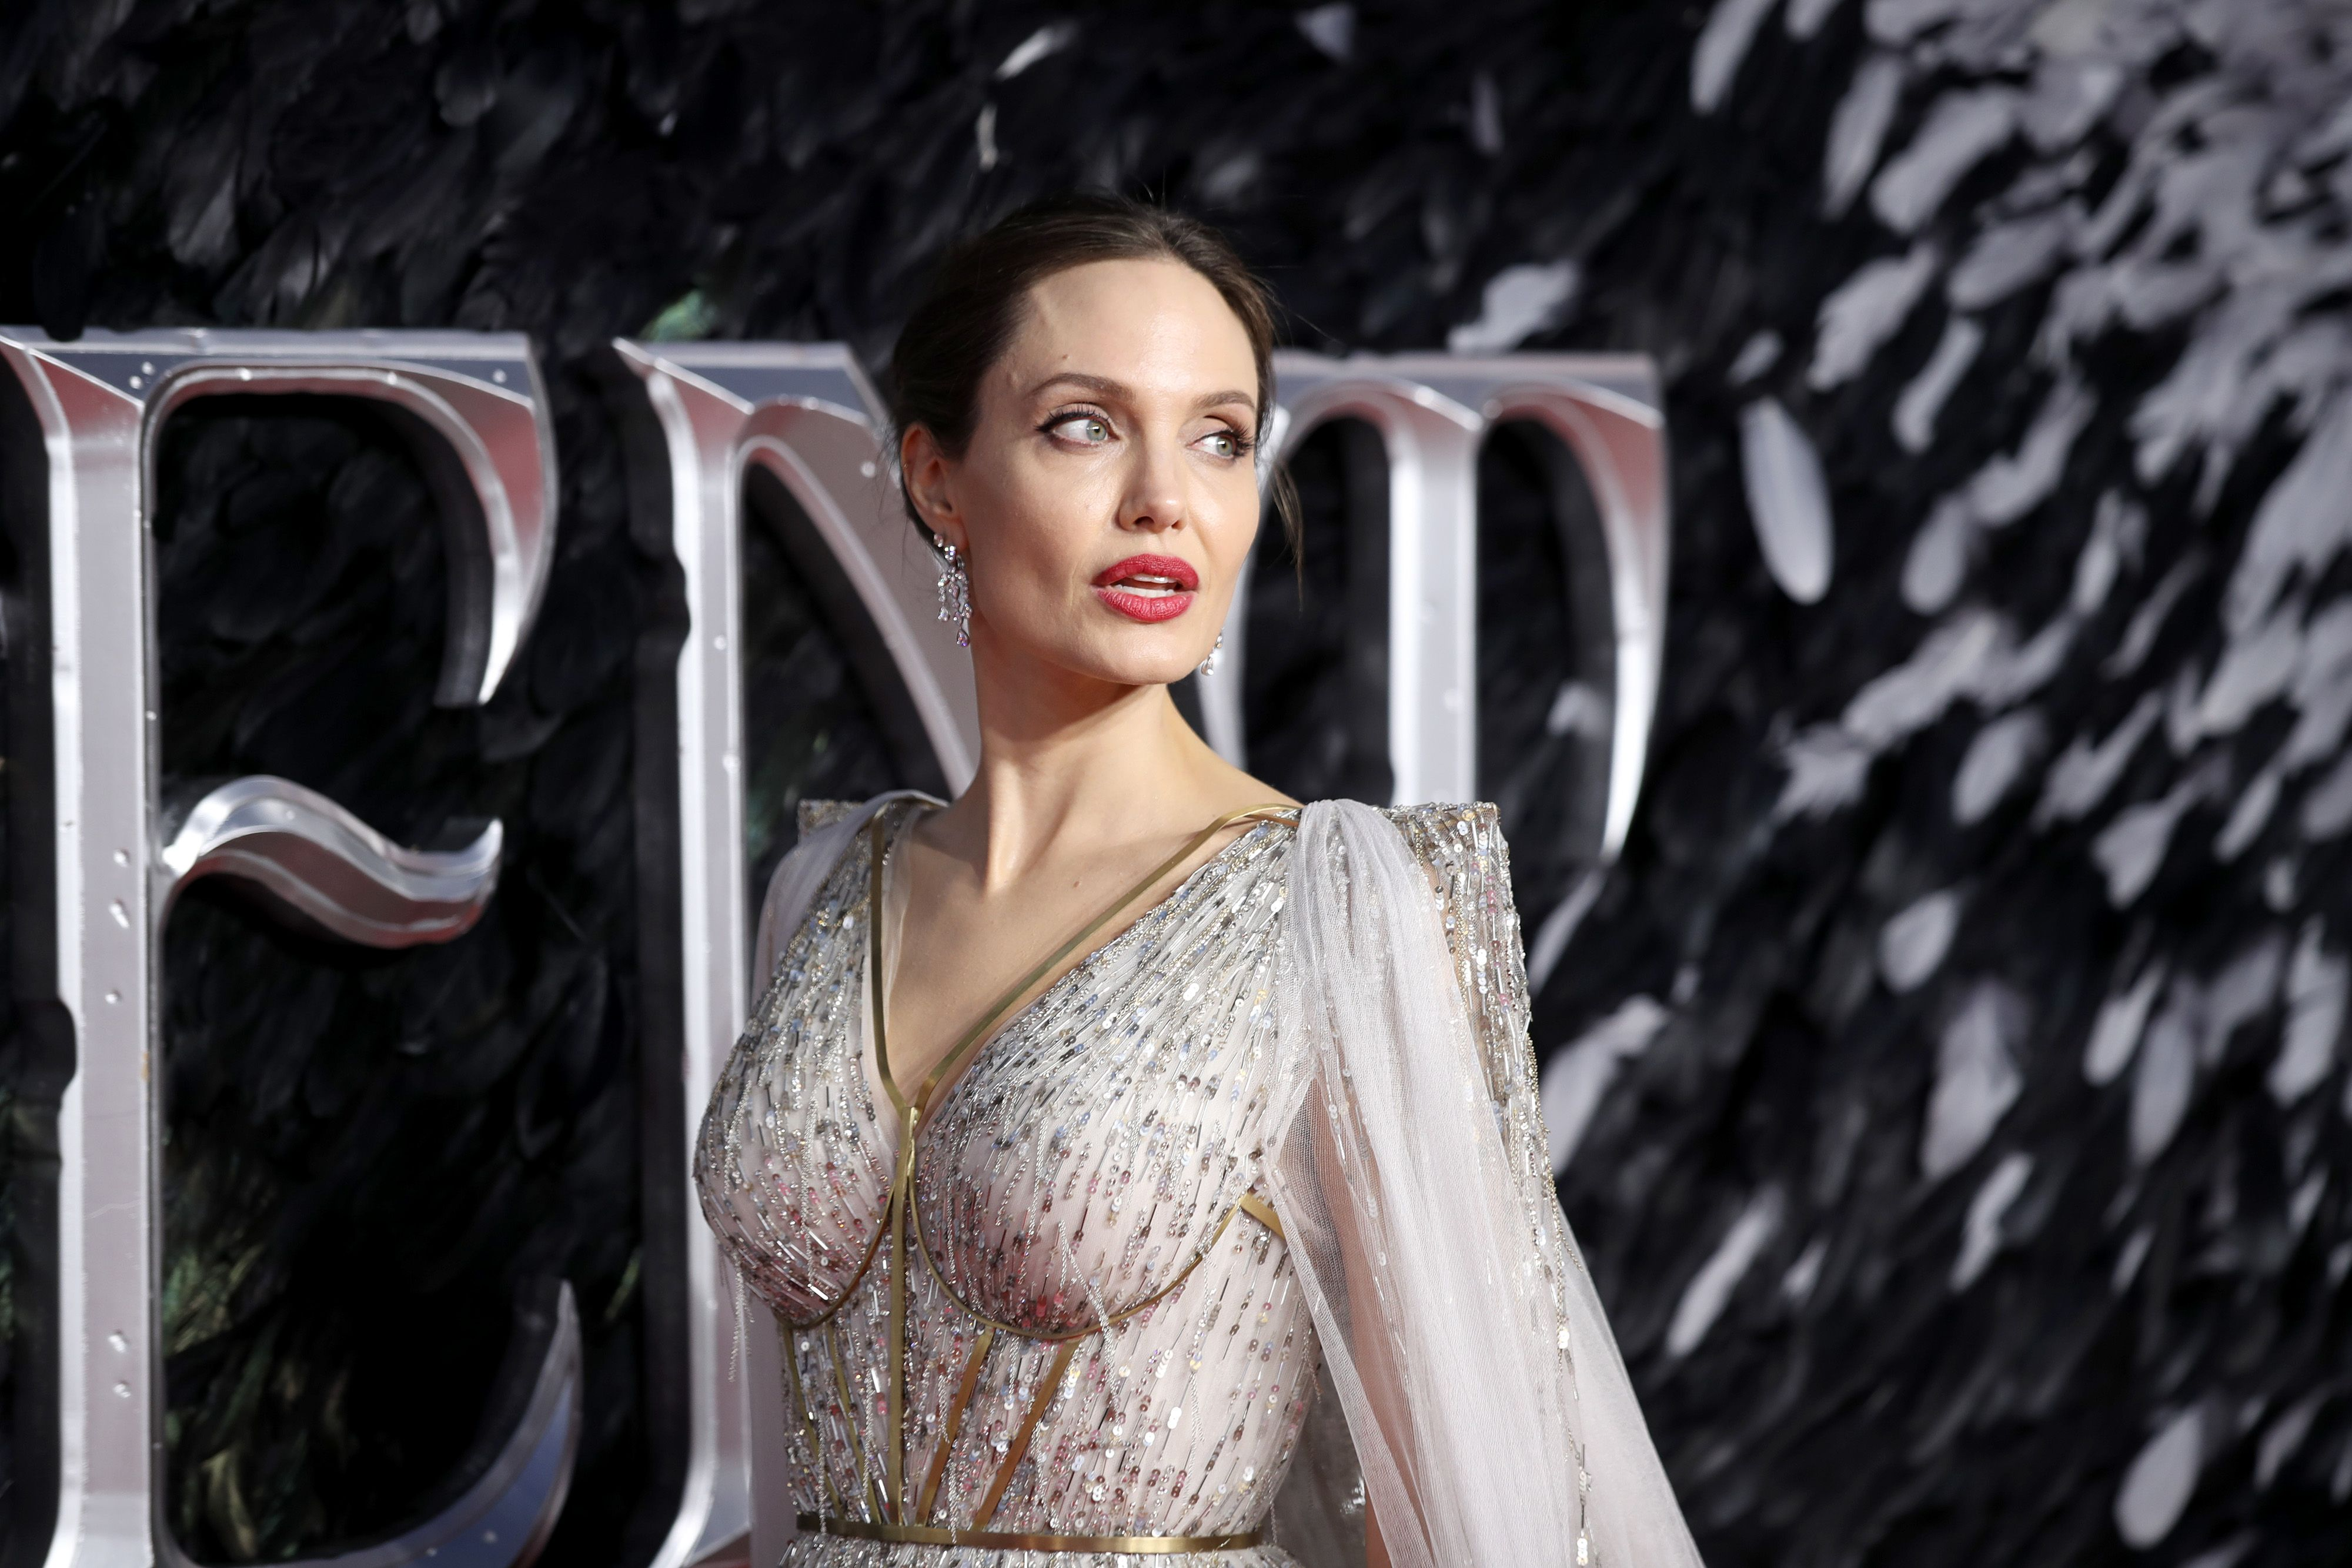 Angelina Jolie attends the Maleficent: Mistress of Evil European Premiere / Getty Images